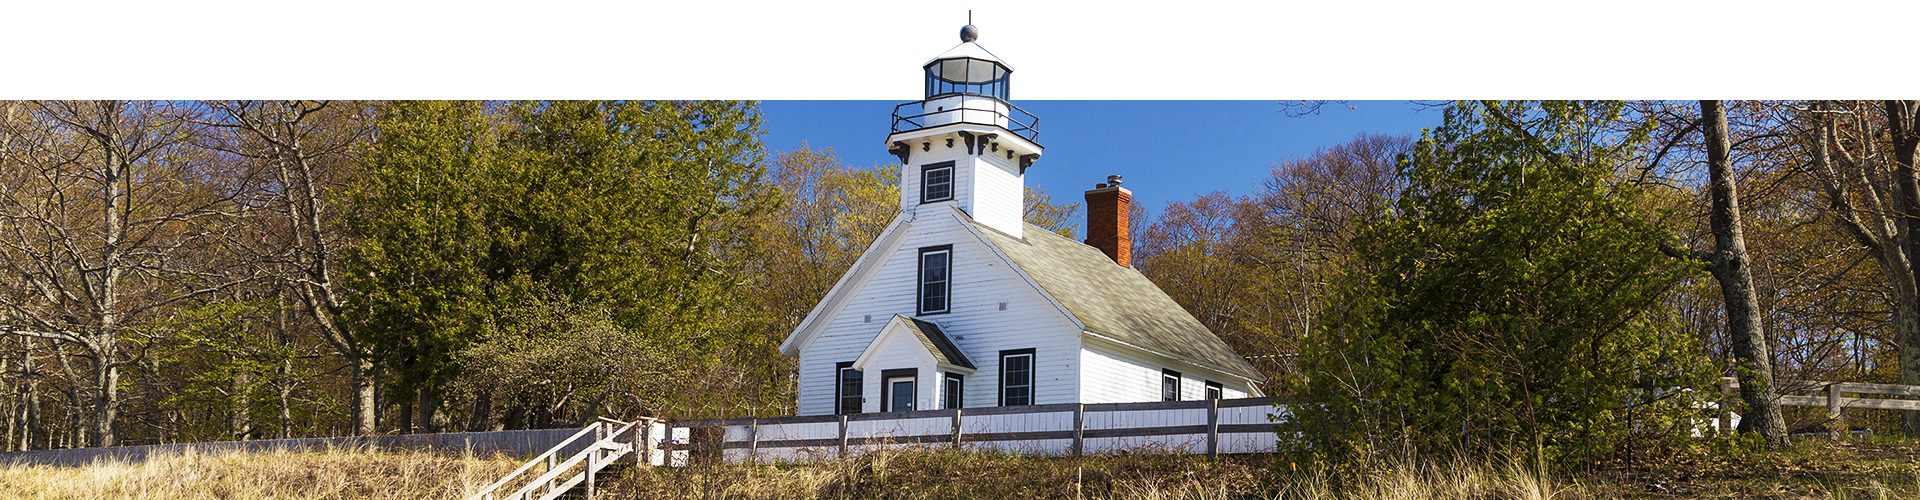 Mission Point Lighthouse in Northern Michigan